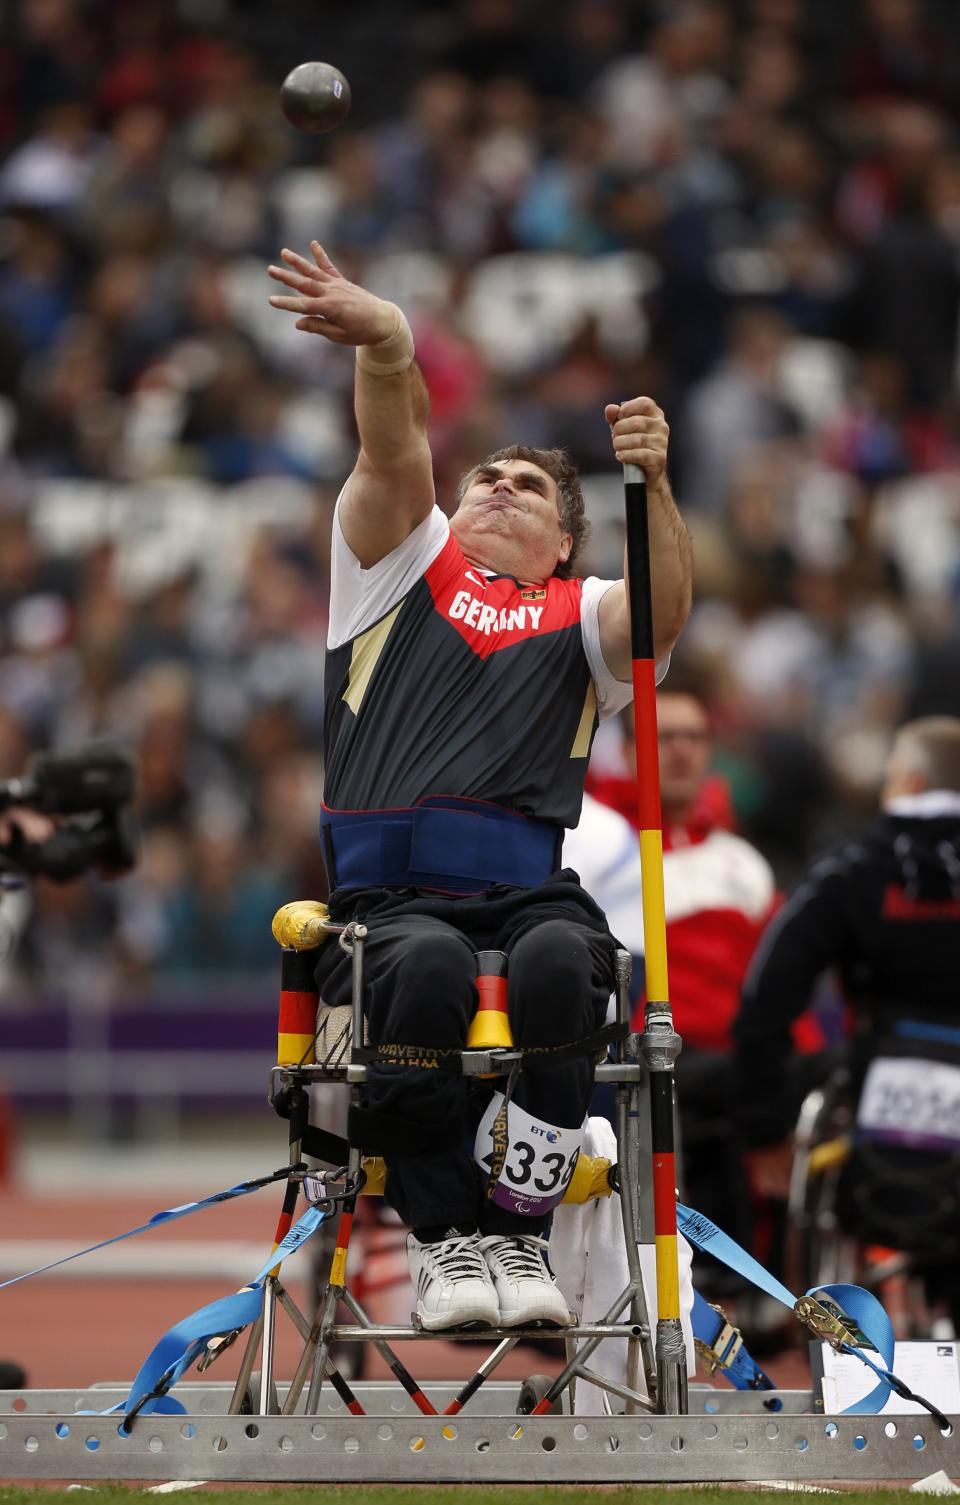 Germany's Ulrich Iser throws in the men's shot put F54/55/56 category during the athletics competition at the 2012 Paralympics, Saturday, Sept. 1, 2012, in London.  (AP Photo/Matt Dunham)